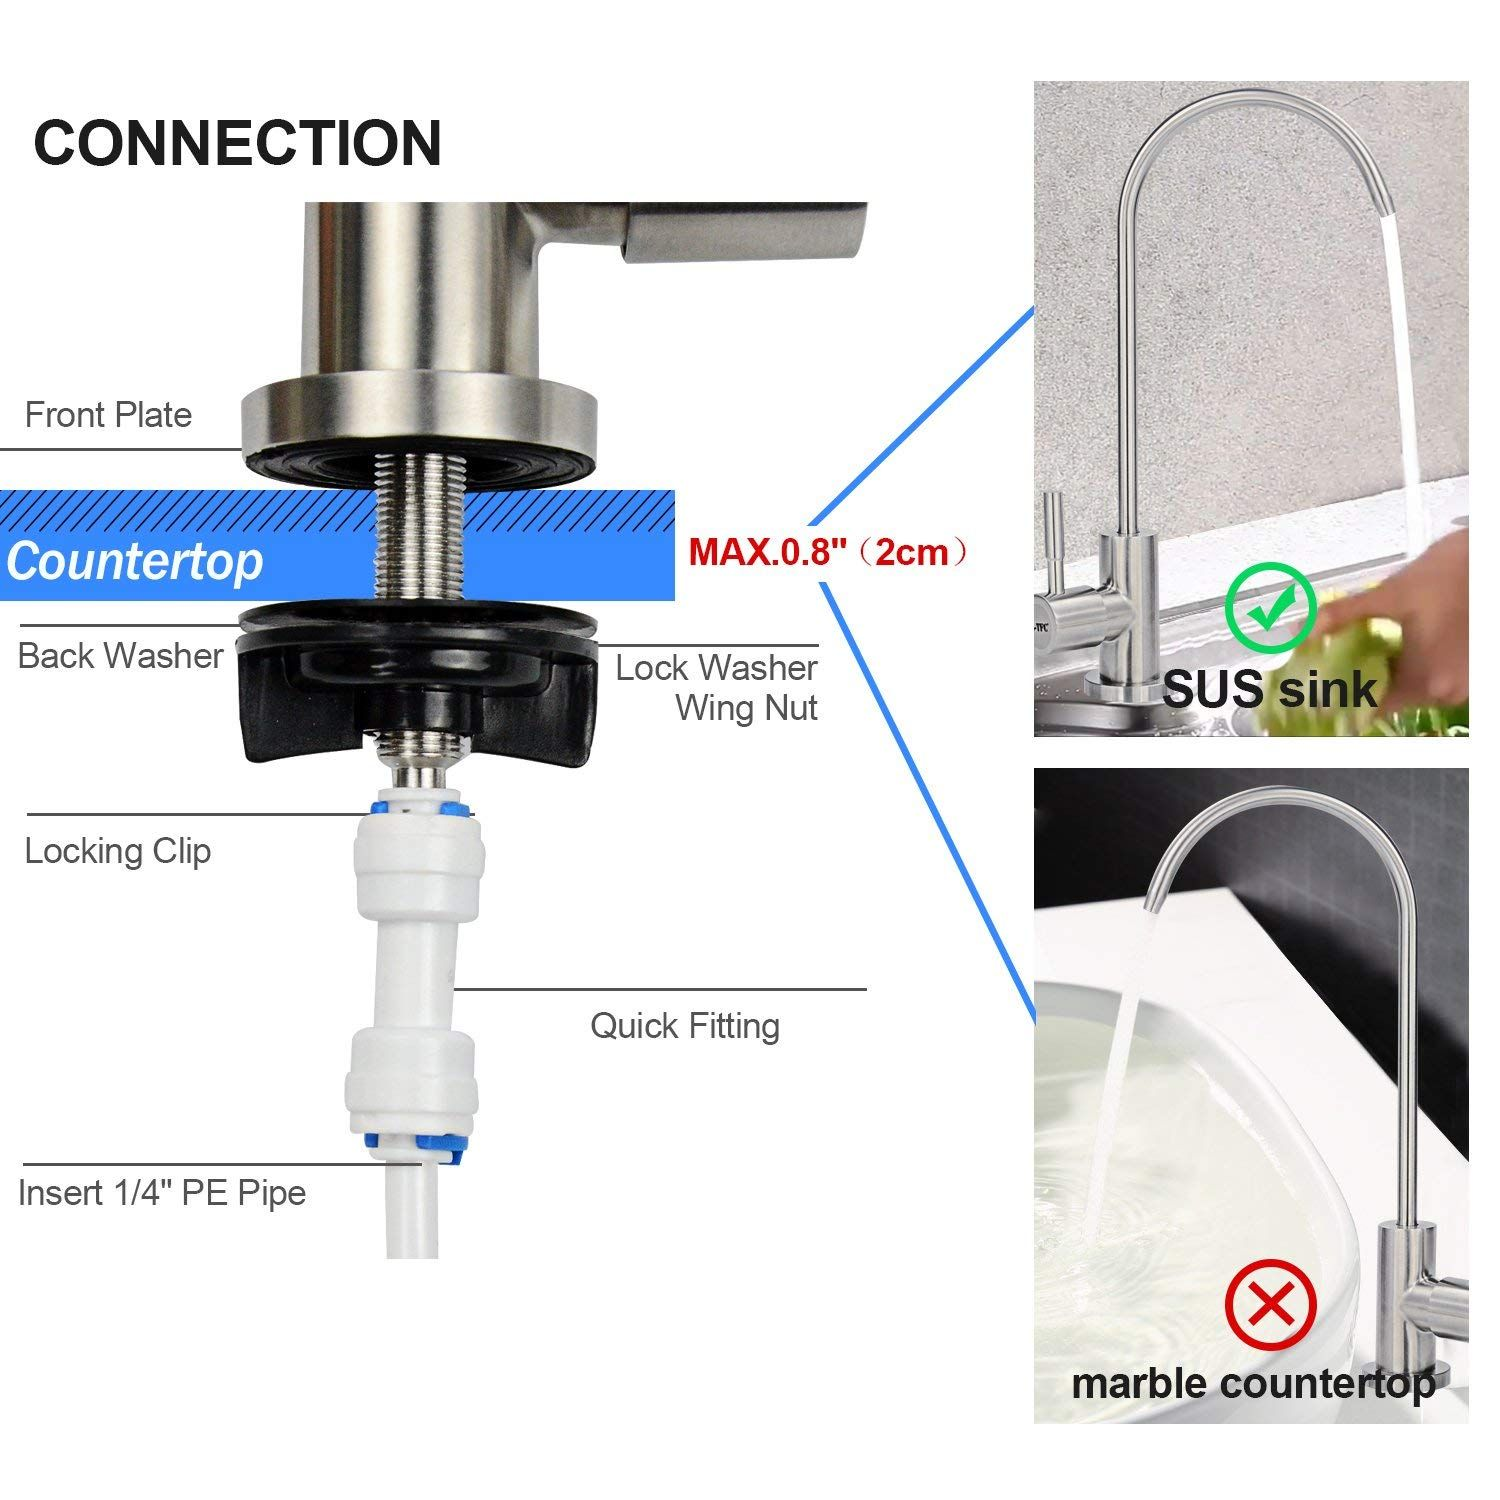 FSTFC Reverse Osmosis Faucet For Drinking Water System